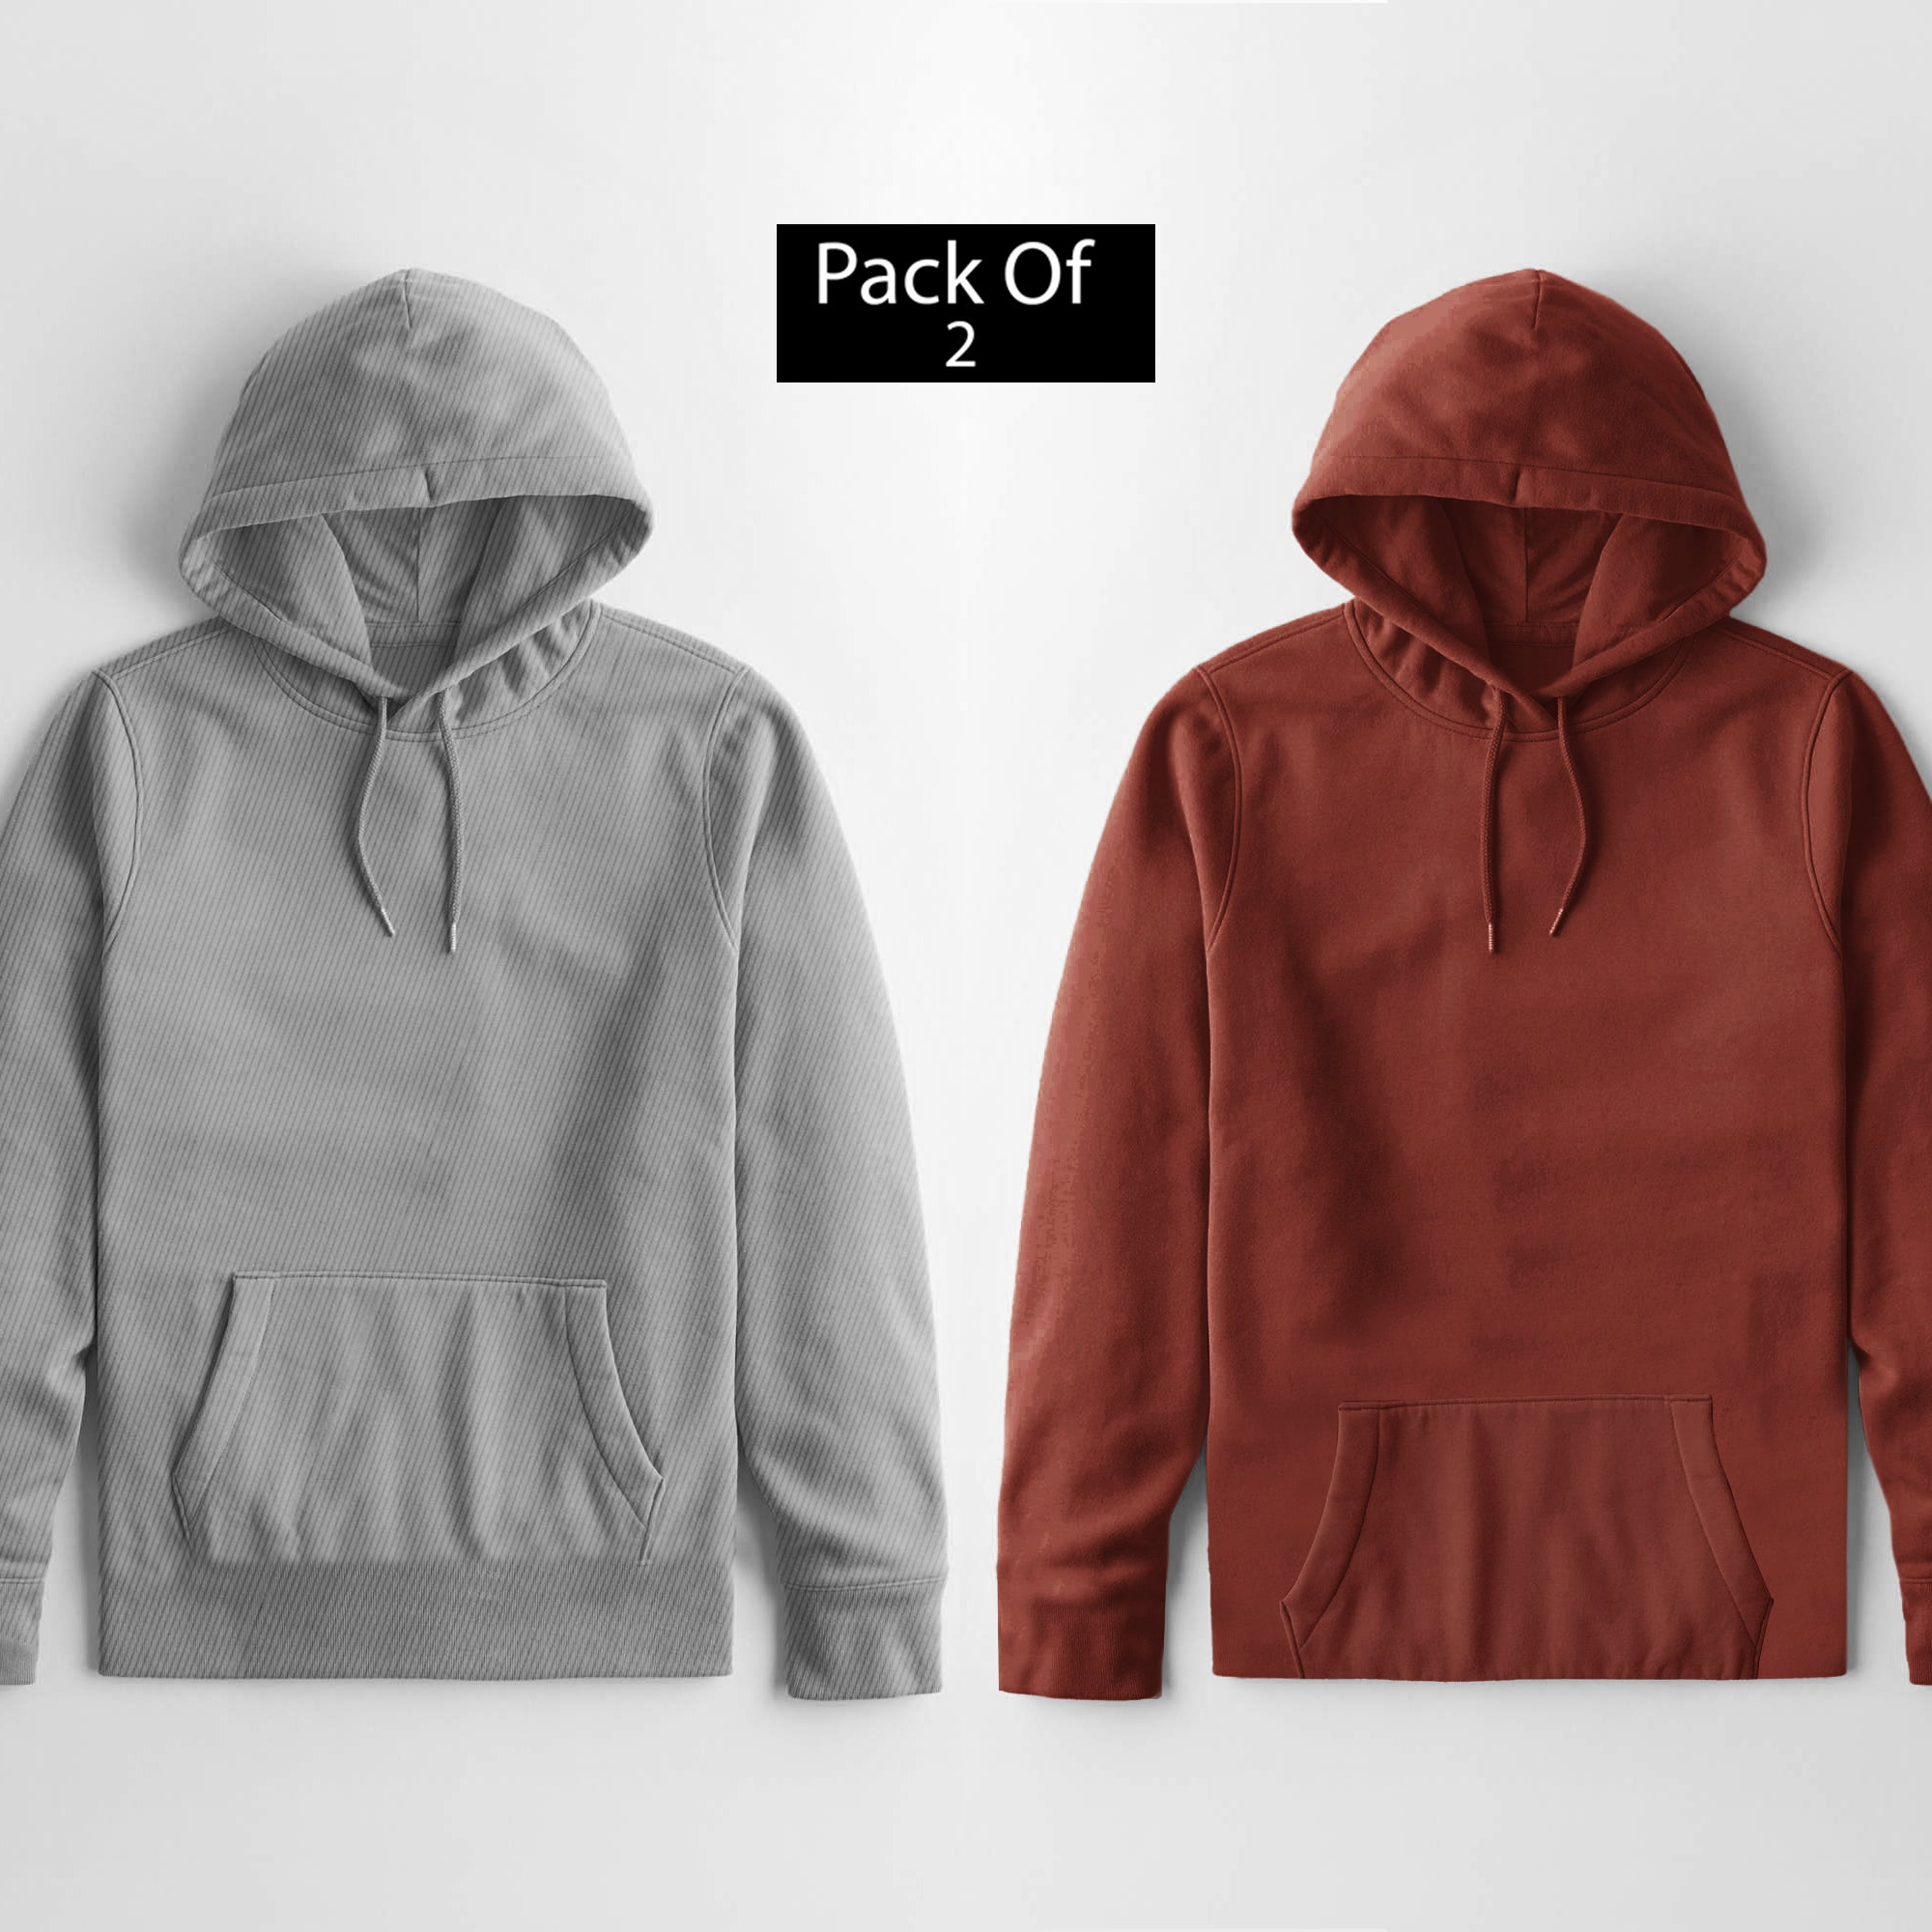 Pack Of 2 Premium Quality Pullover Hoodie For Ladies-SP4596